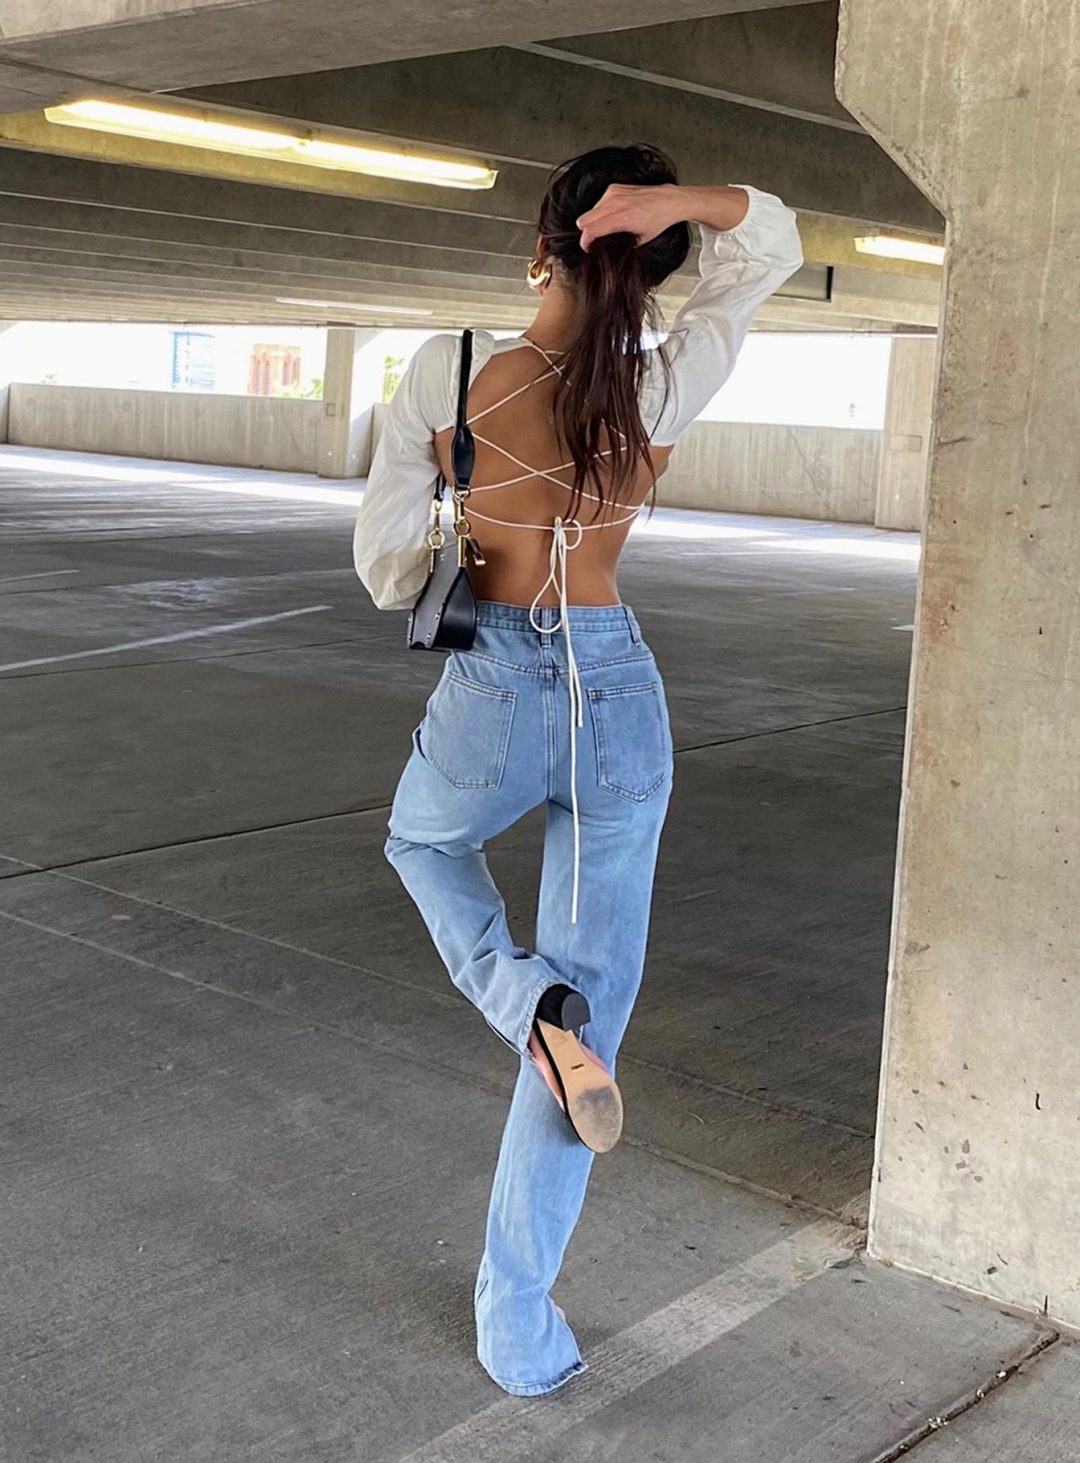 23 Cool Outfits With Mom Jeans For The Laid-Back Babe